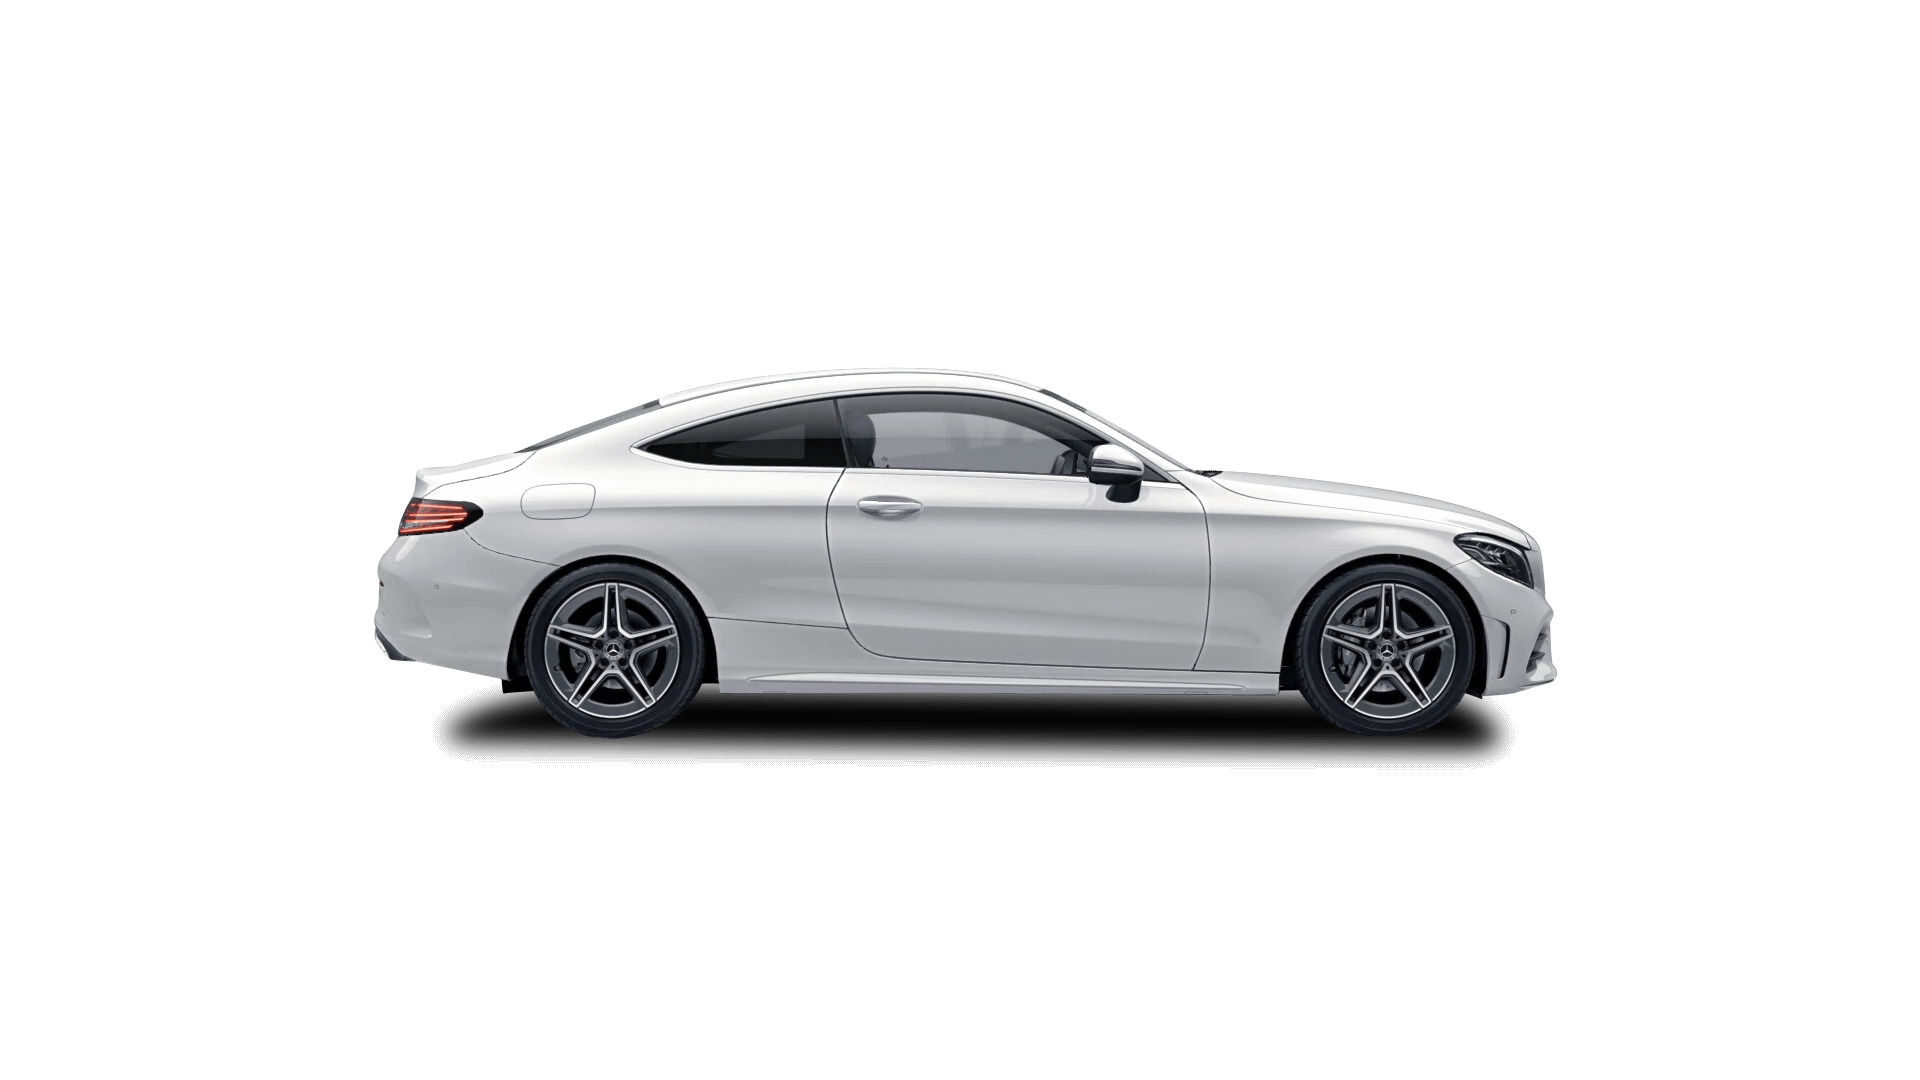 https://bluesky-cogcms.cdn.imgeng.in/media/35288/c-class-coupe-amg-line.png